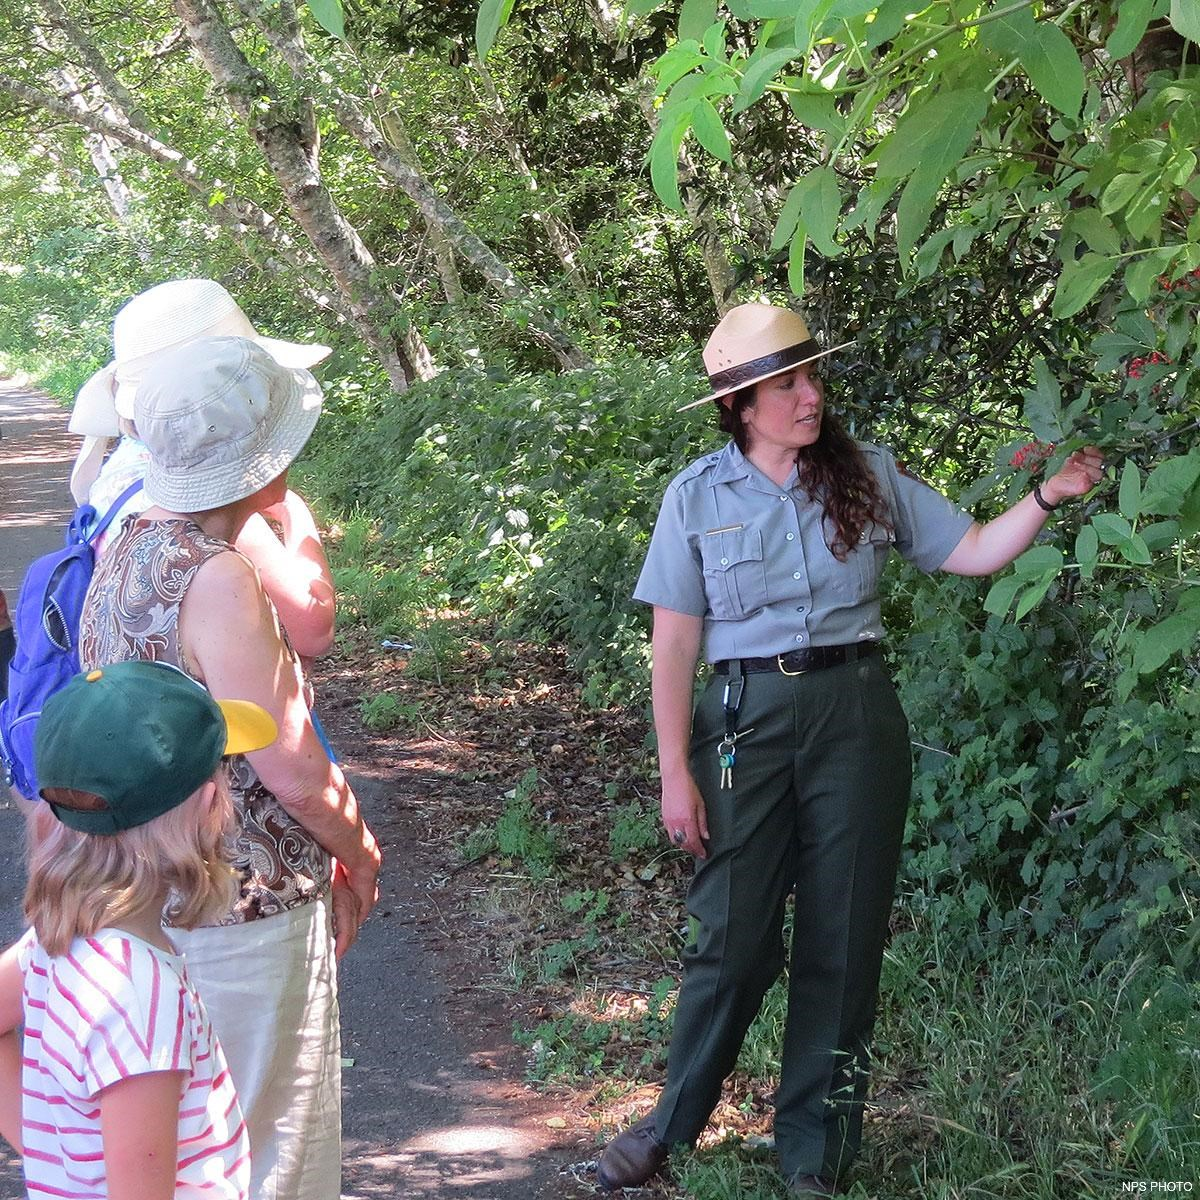 A park ranger point to some red elderberries while talking to visitors.